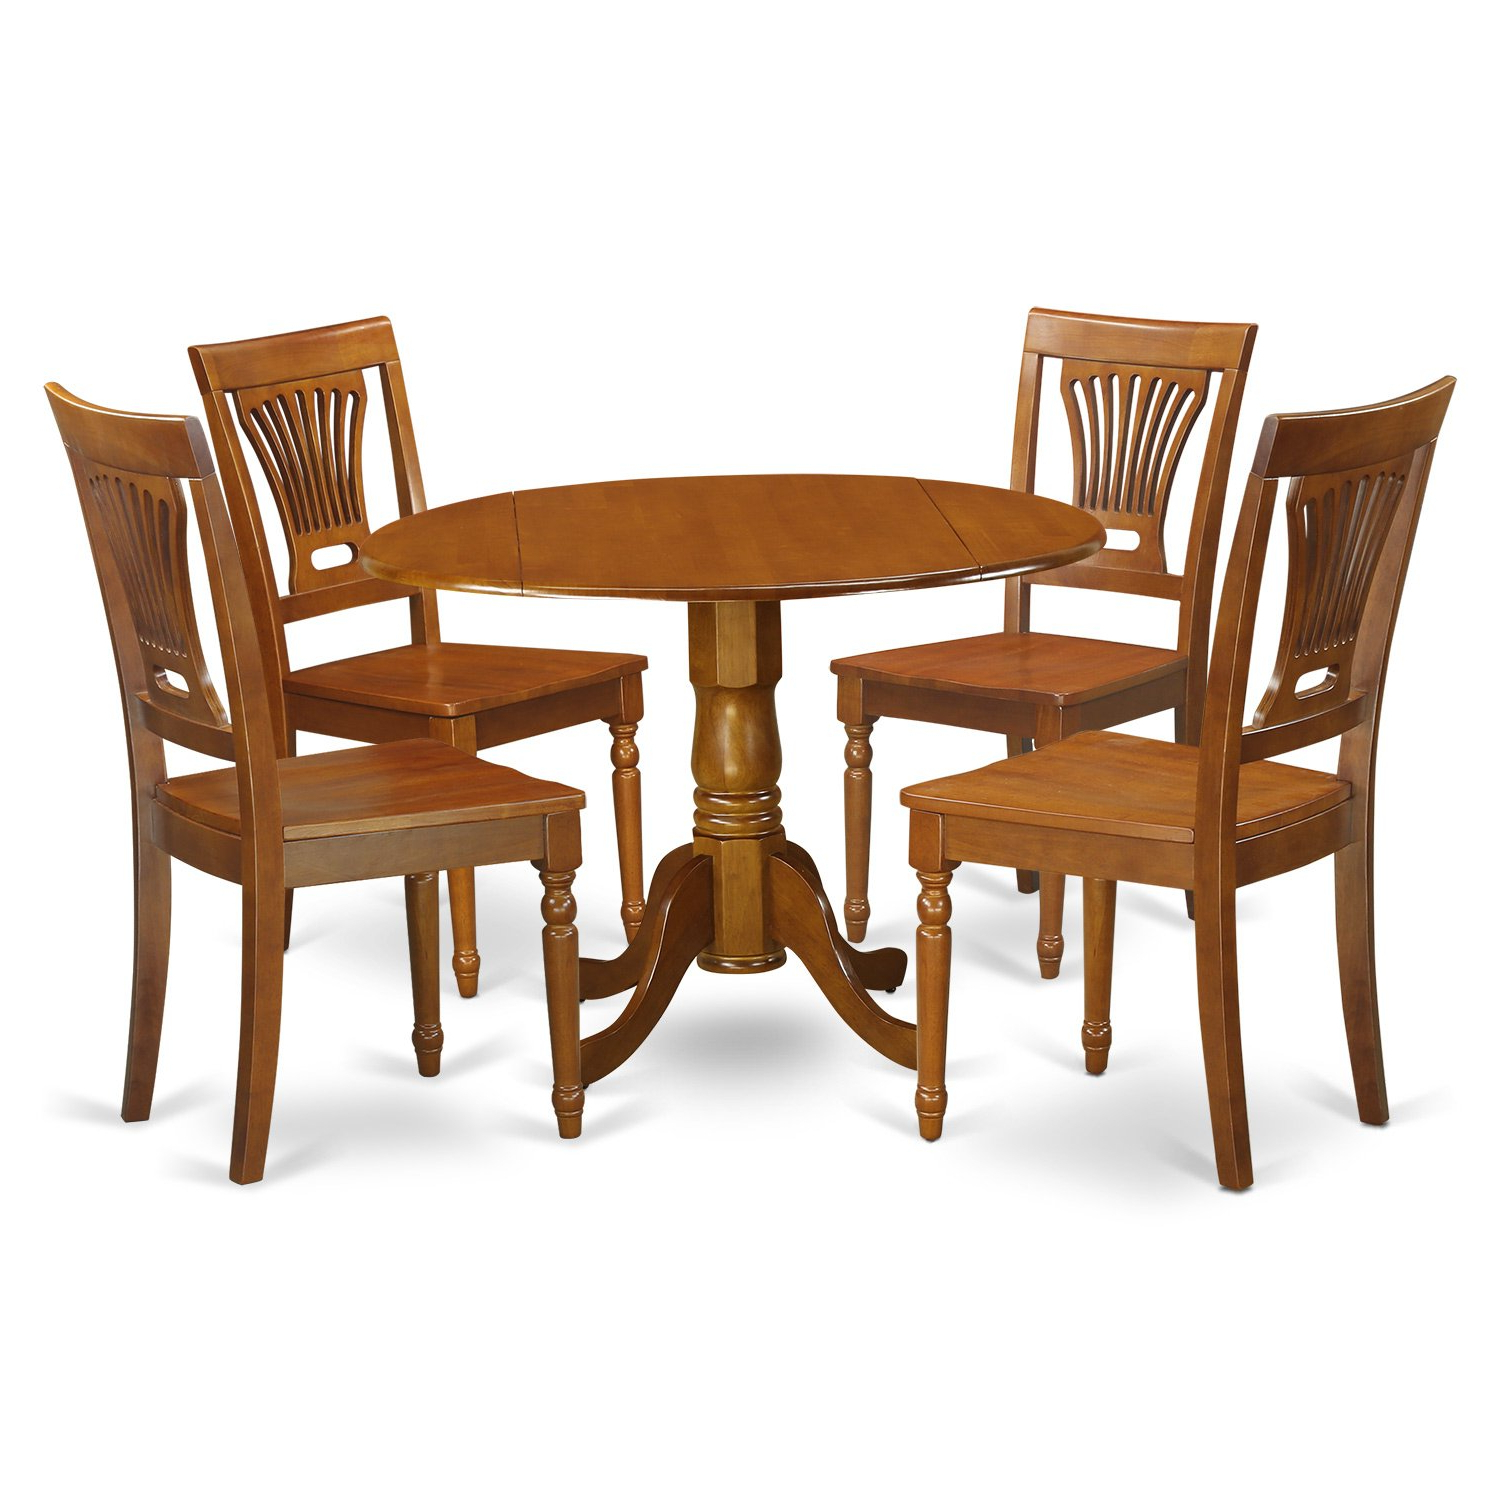 Trendy East West Furniture Dlpl5 Sbr W 5 Piece Kitchen Nook Dining Table Set,  Saddle Brown Finish Within 5 Piece Breakfast Nook Dining Sets (View 16 of 20)